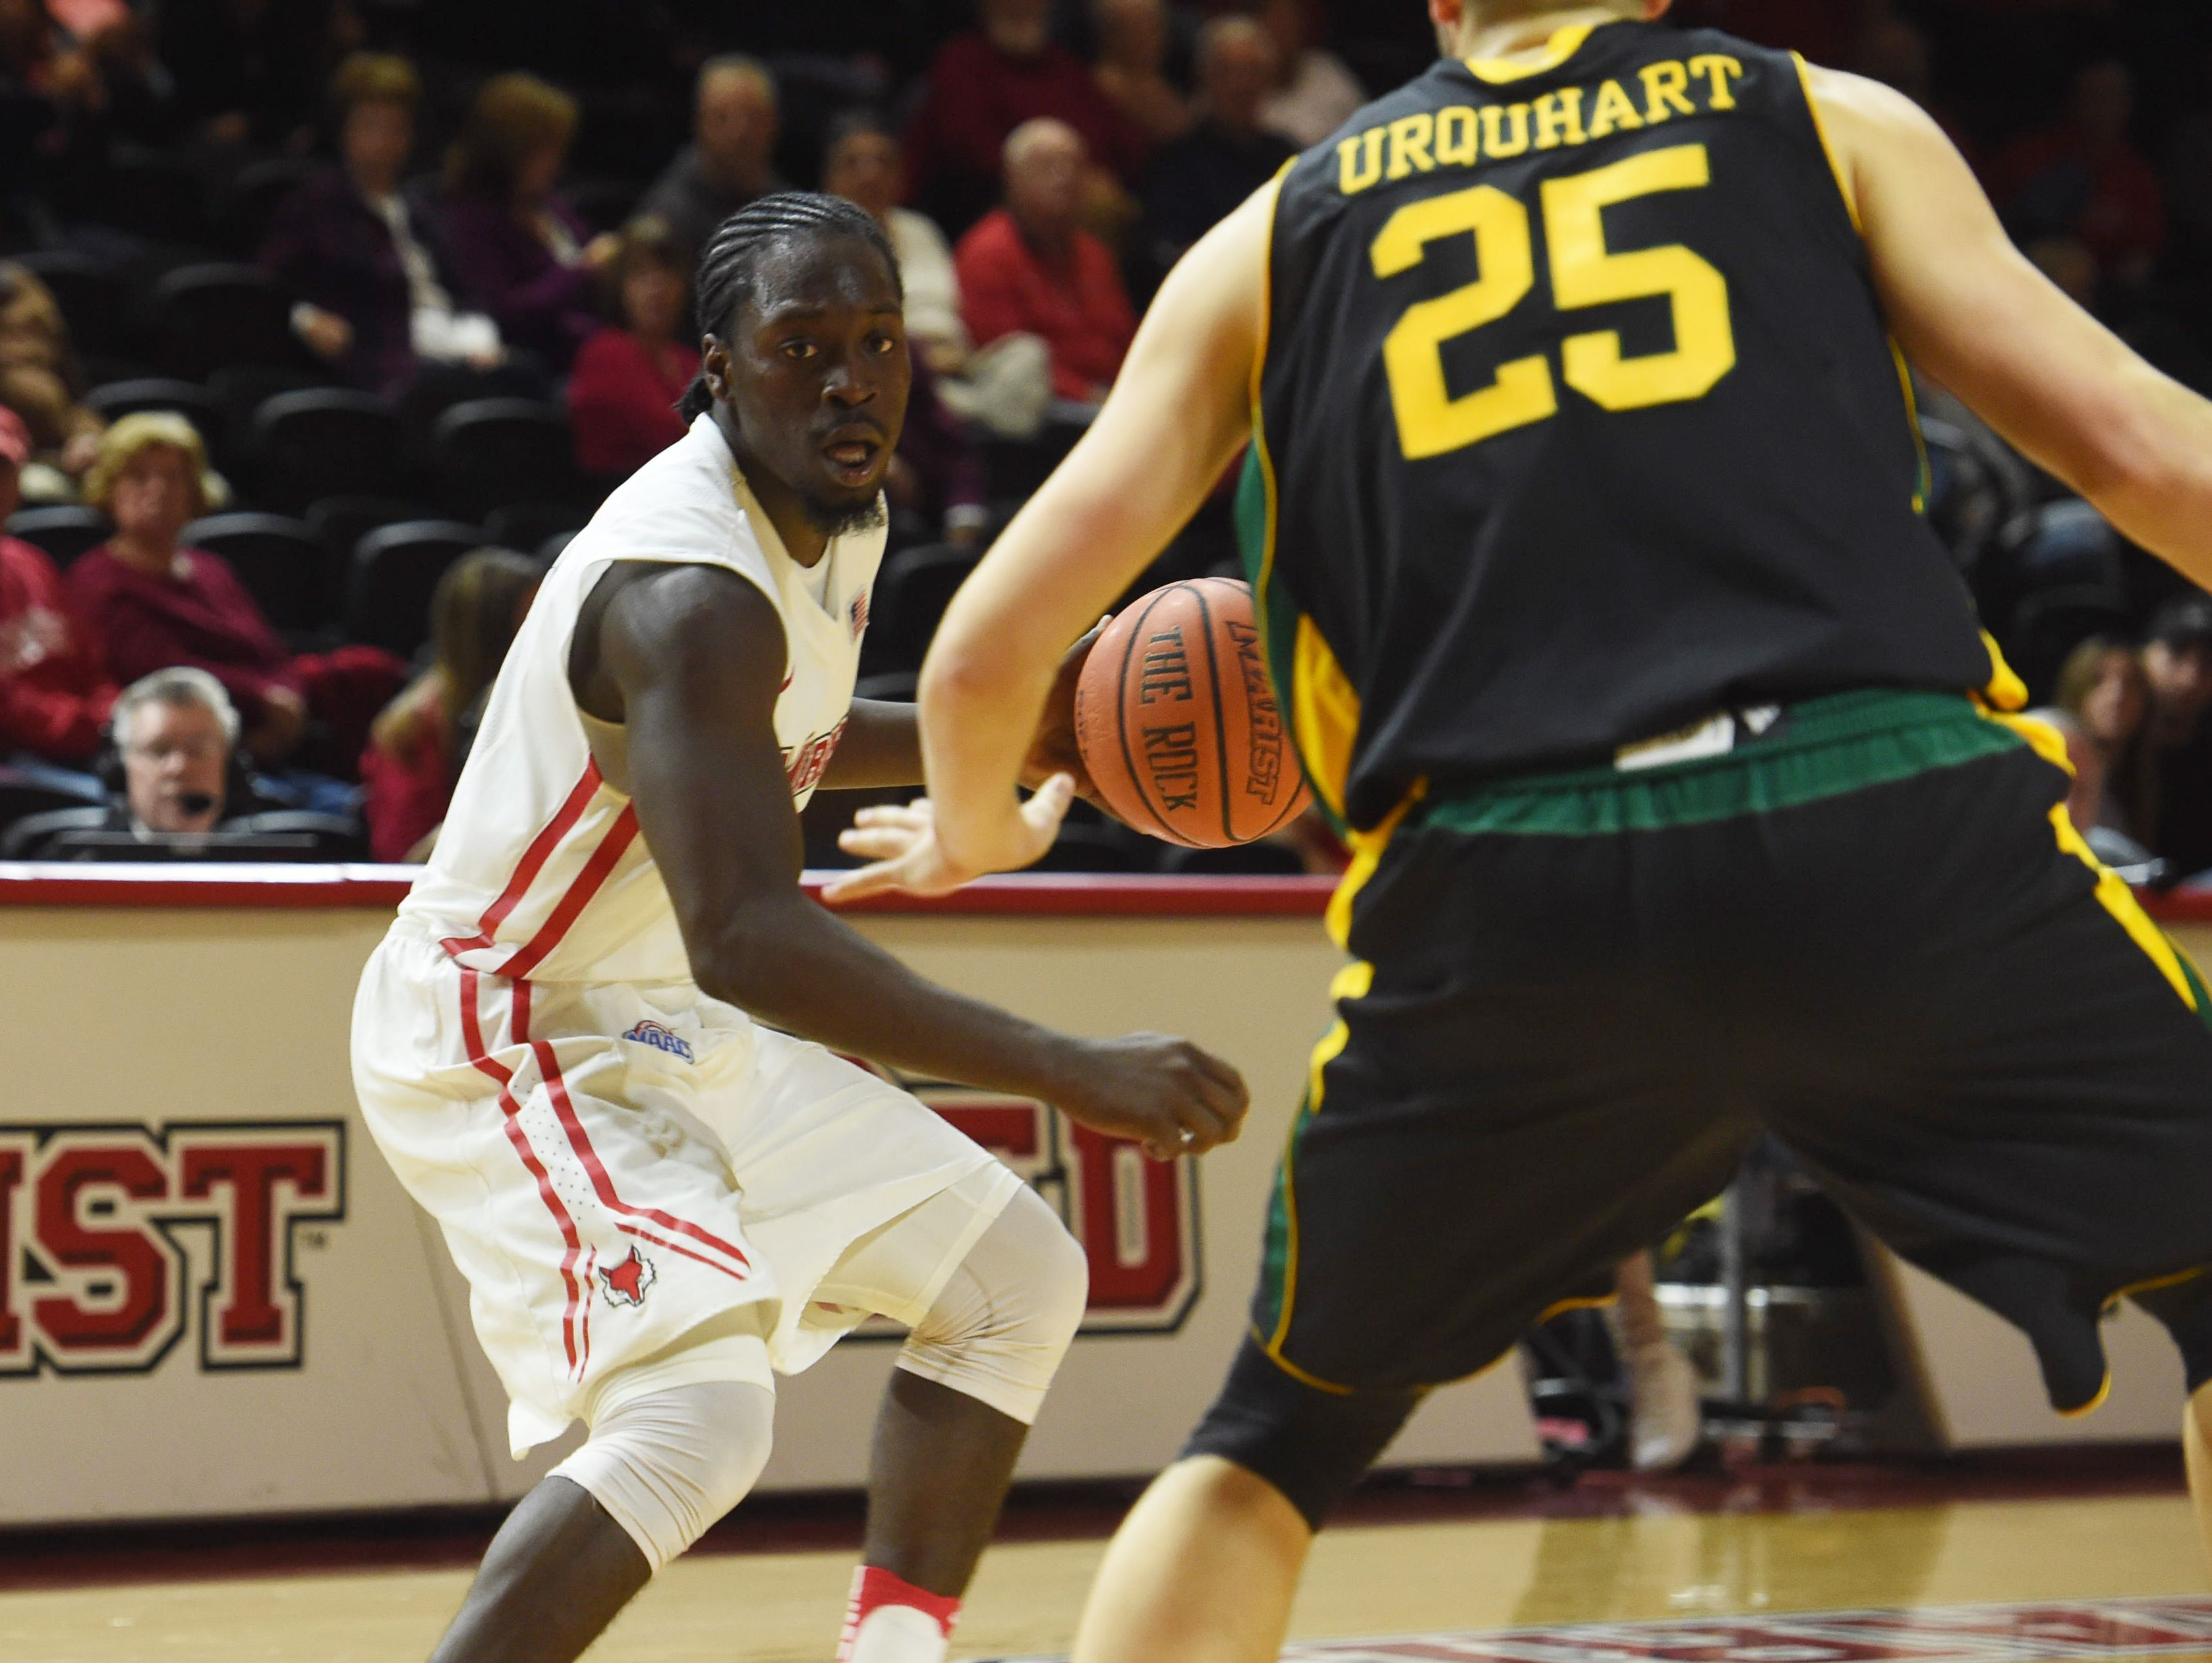 Marist's Khallid Hart looks for an open teammate during Wednesday's home opener against Vermont.